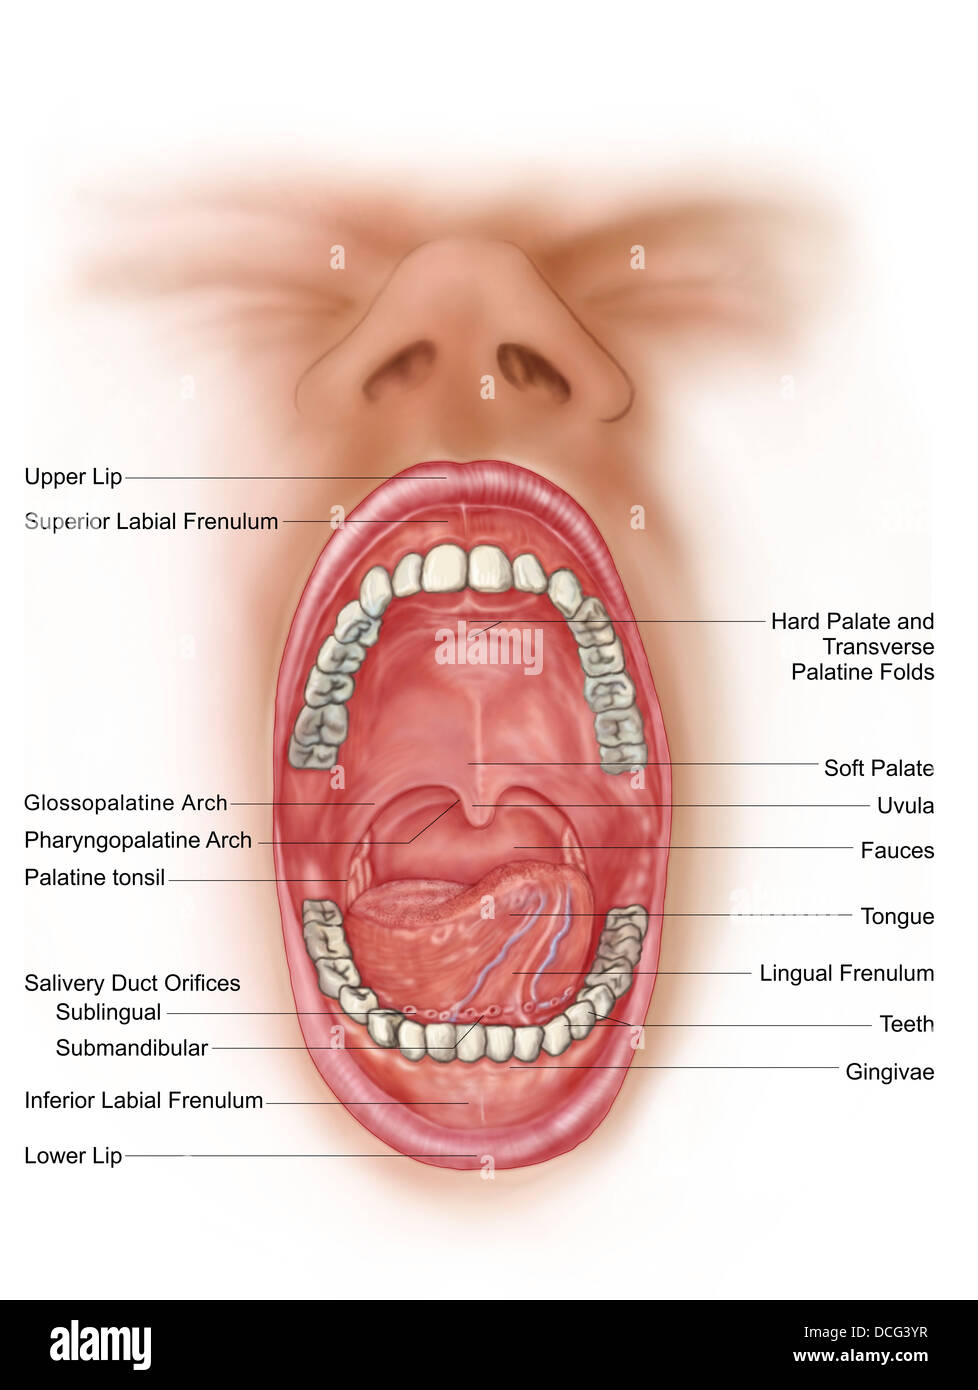 Anatomy of human mouth cavity Stock Photo: 59361339 - Alamy